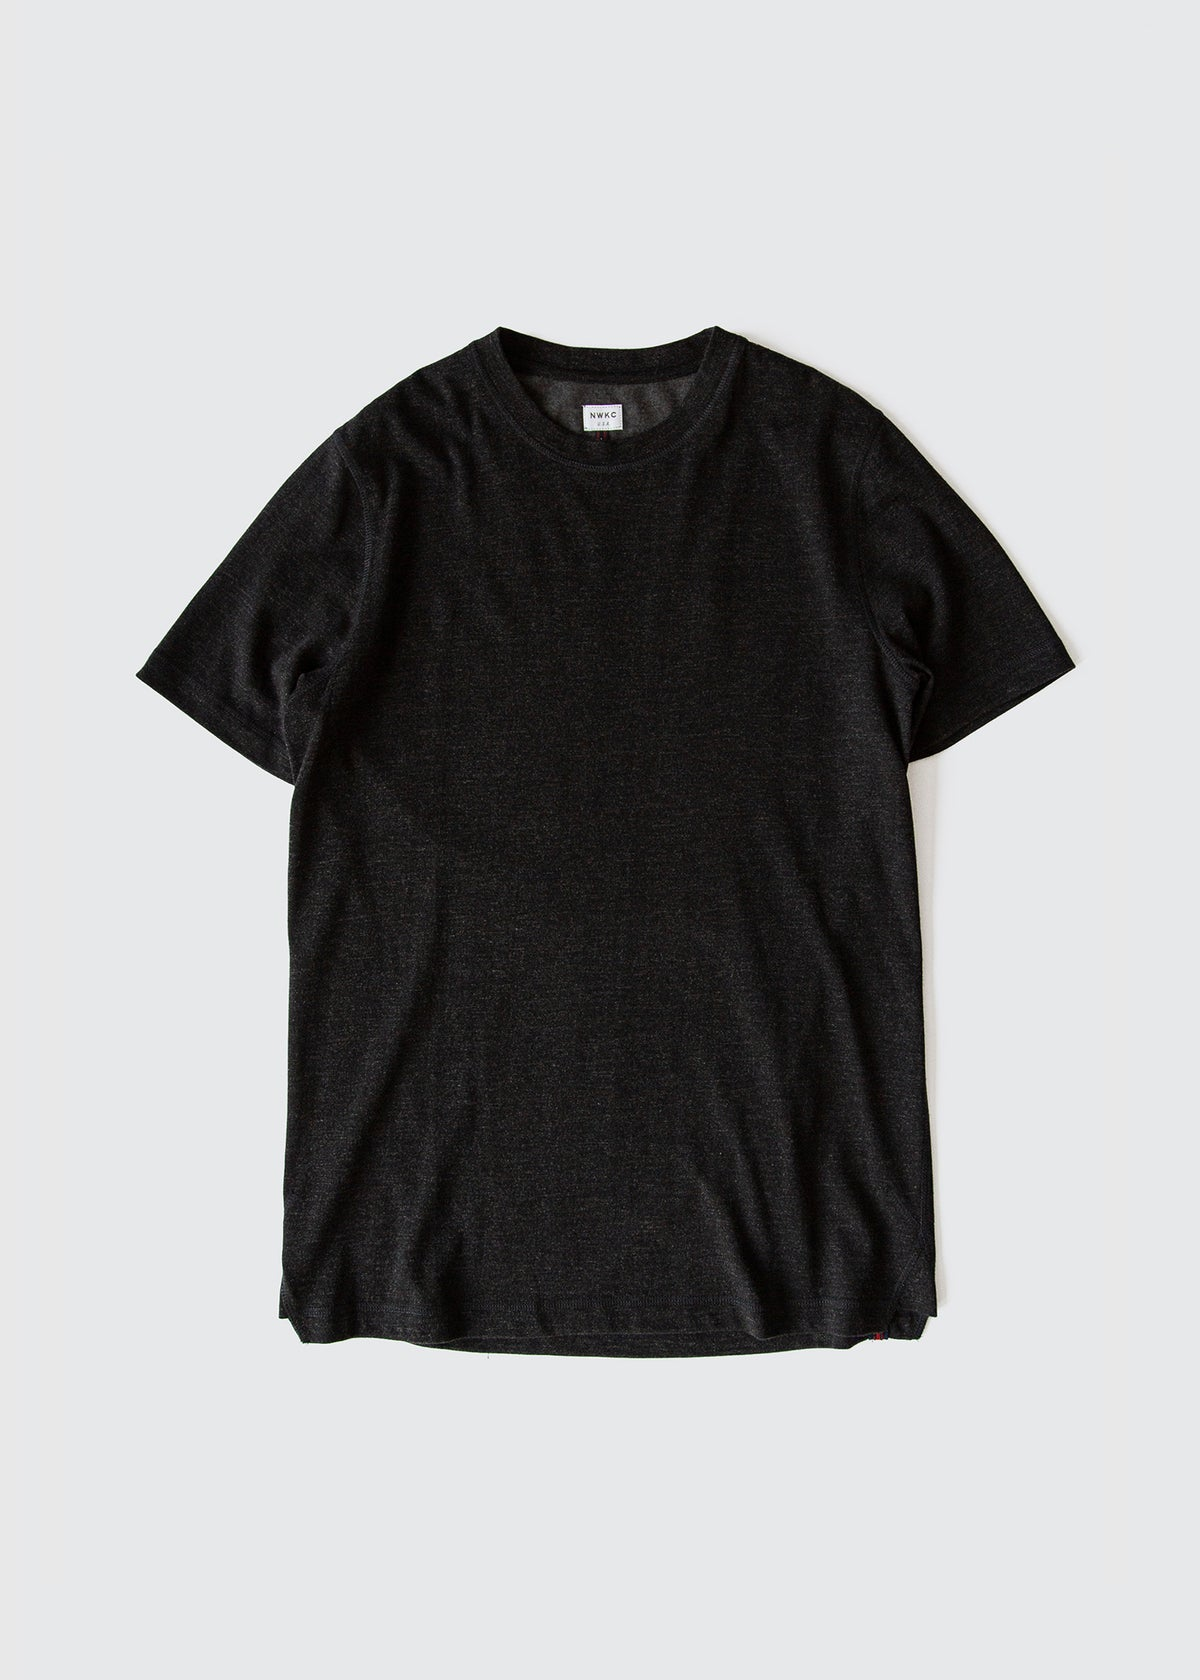 101 - SS TEE - BLACK - Wilson & Willy's - MPLS Neighbor Goods